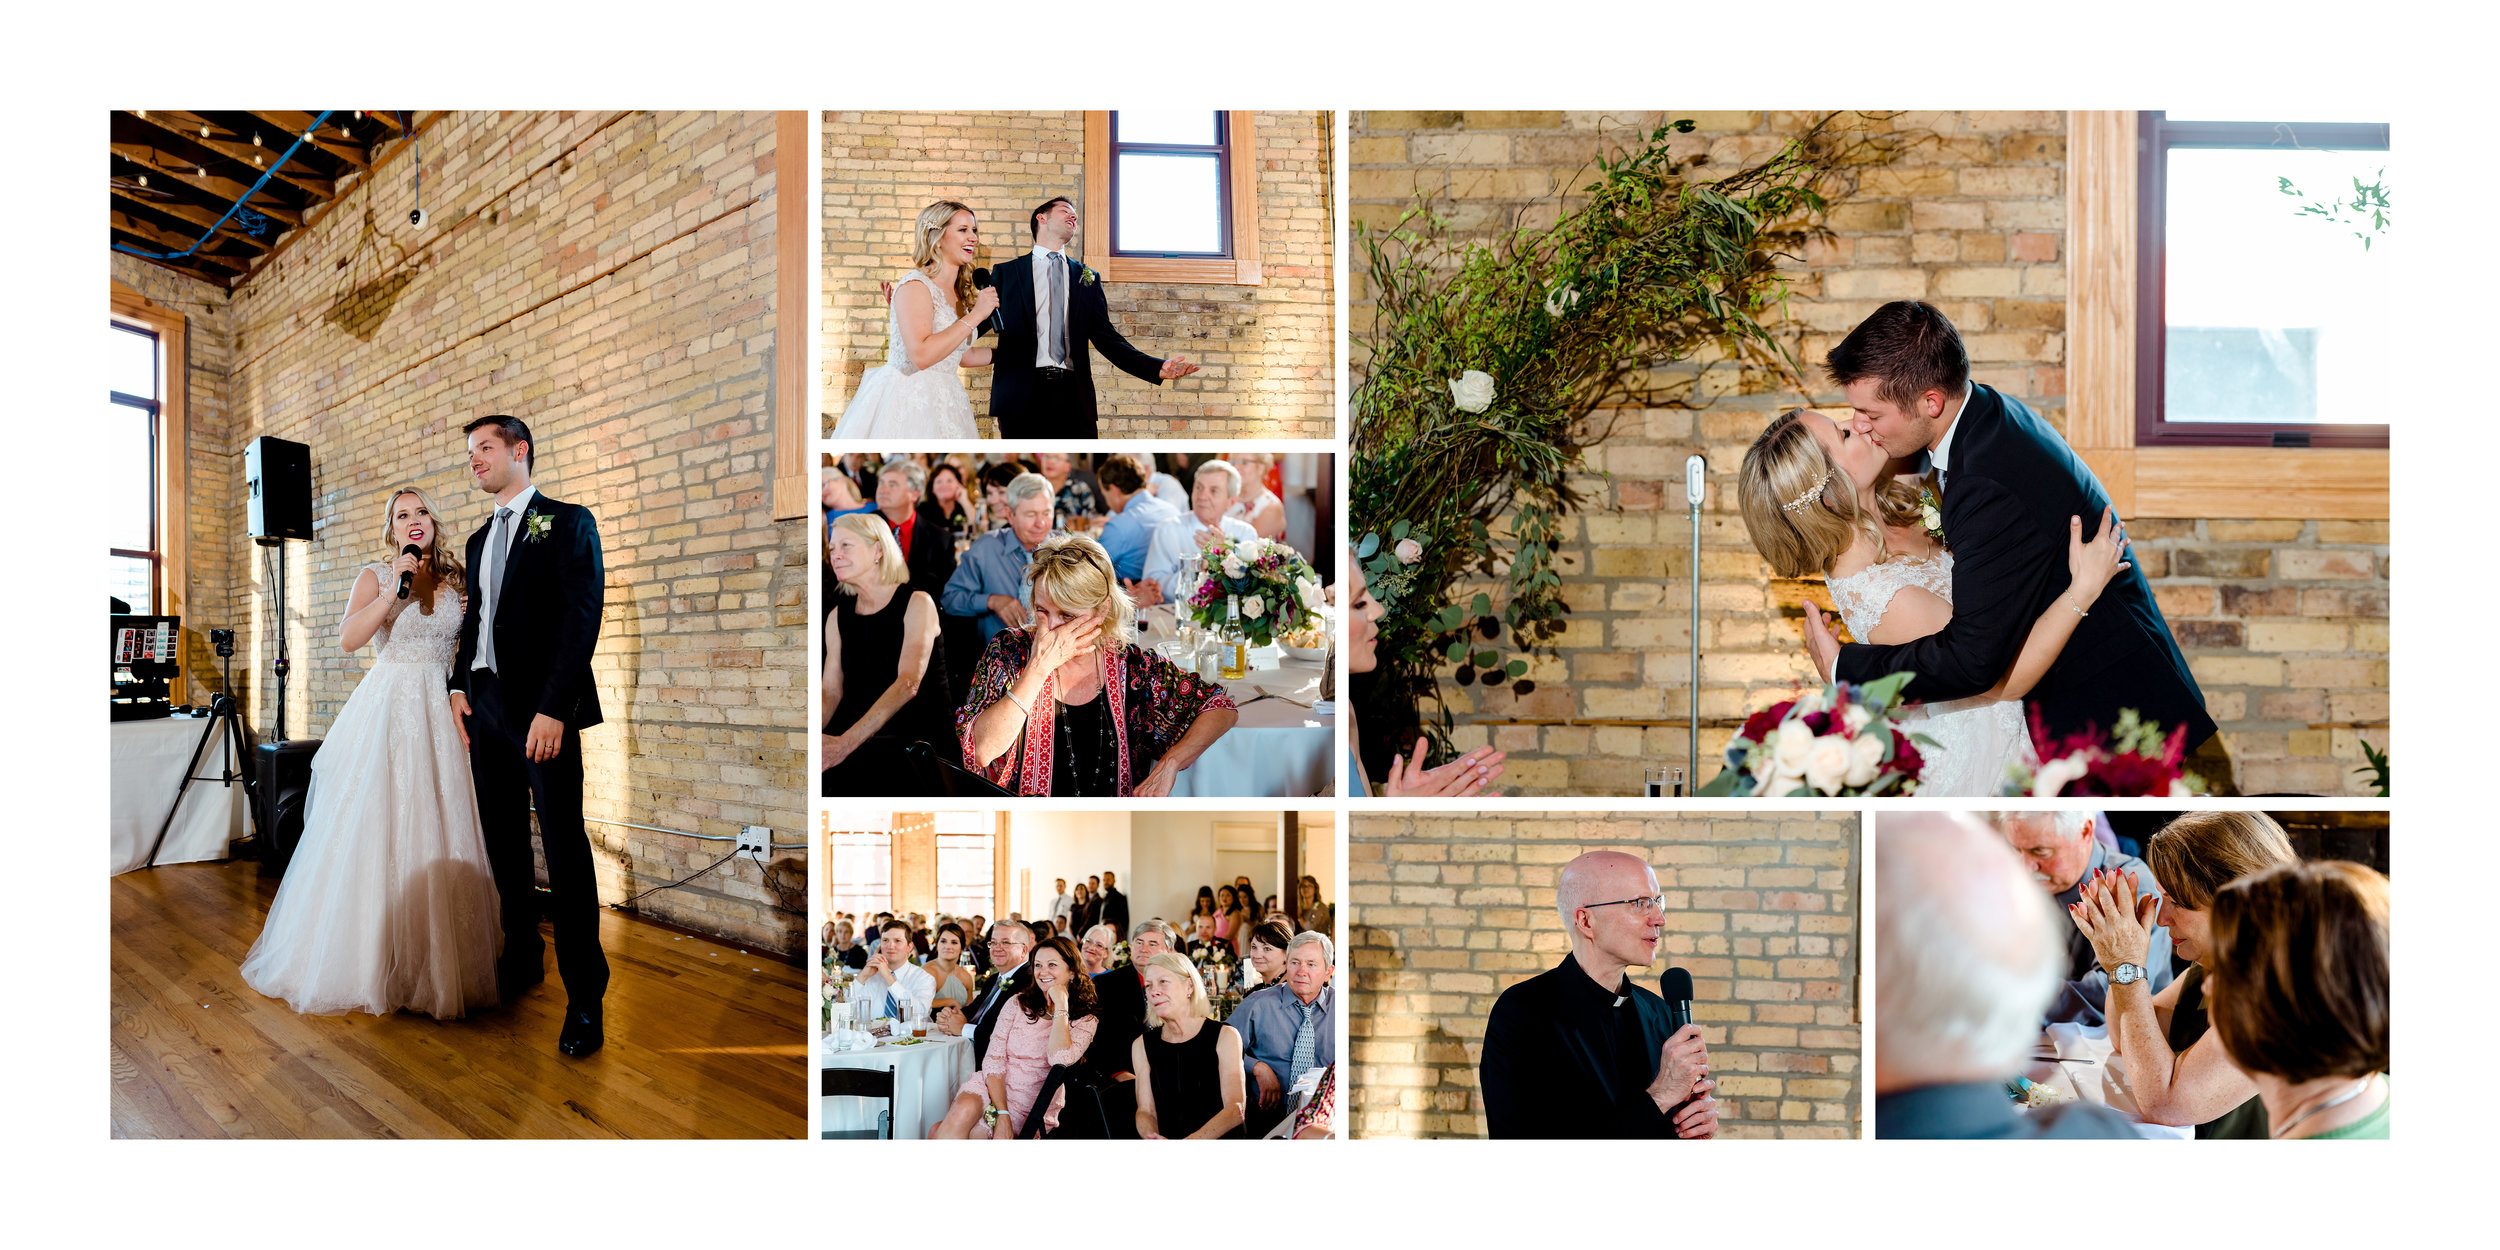 Kristen + Eric - Wedding Album Sample_27.jpg